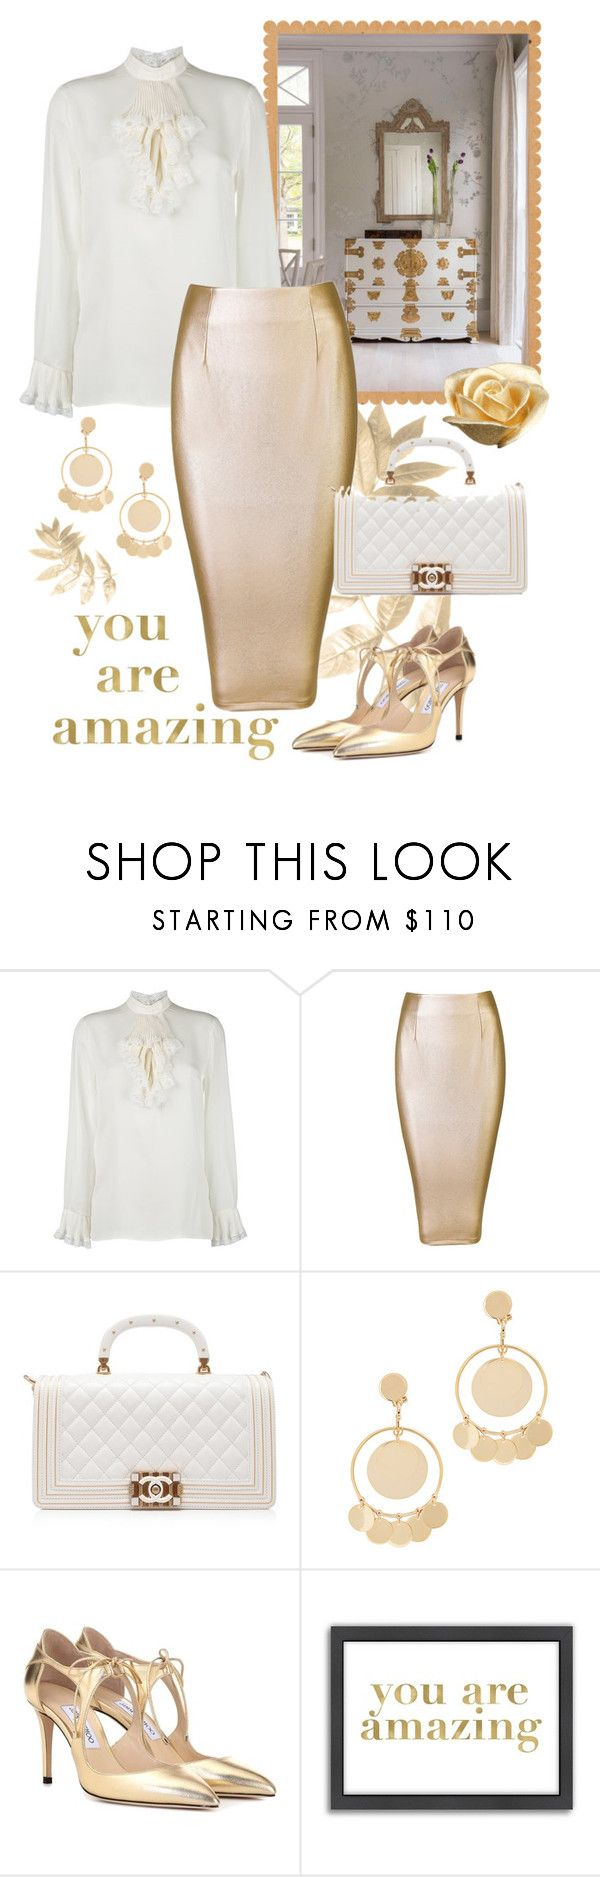 """""""Gold and White"""" by giovanina-001 ❤ liked on Polyvore featuring Gucci, Chanel, Eddie Borgo, Jimmy Choo, Americanflat and PearlsandLace"""